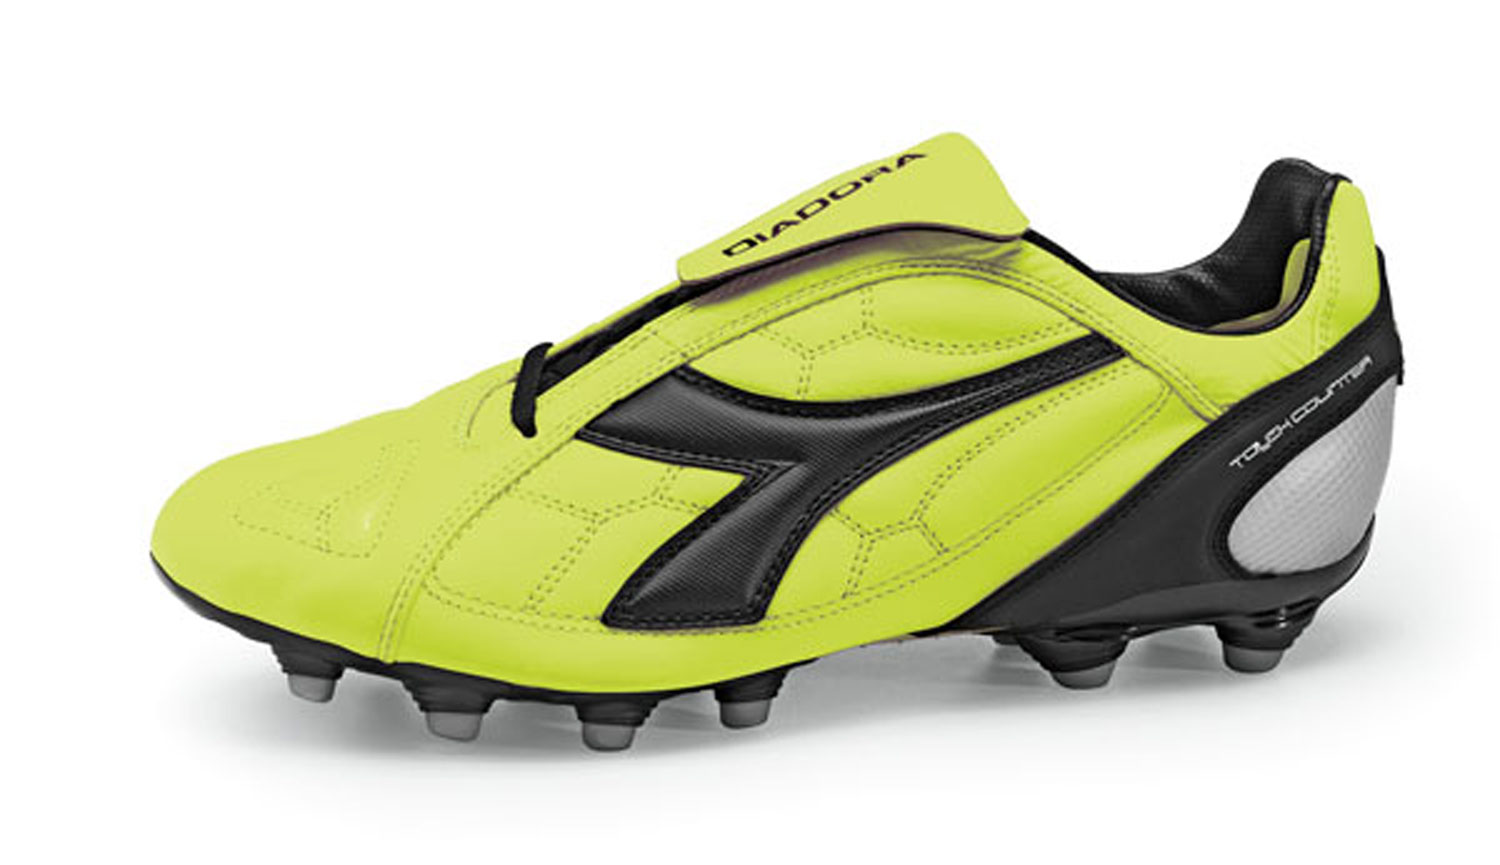 Diadora DD 11 soccer cleats in green